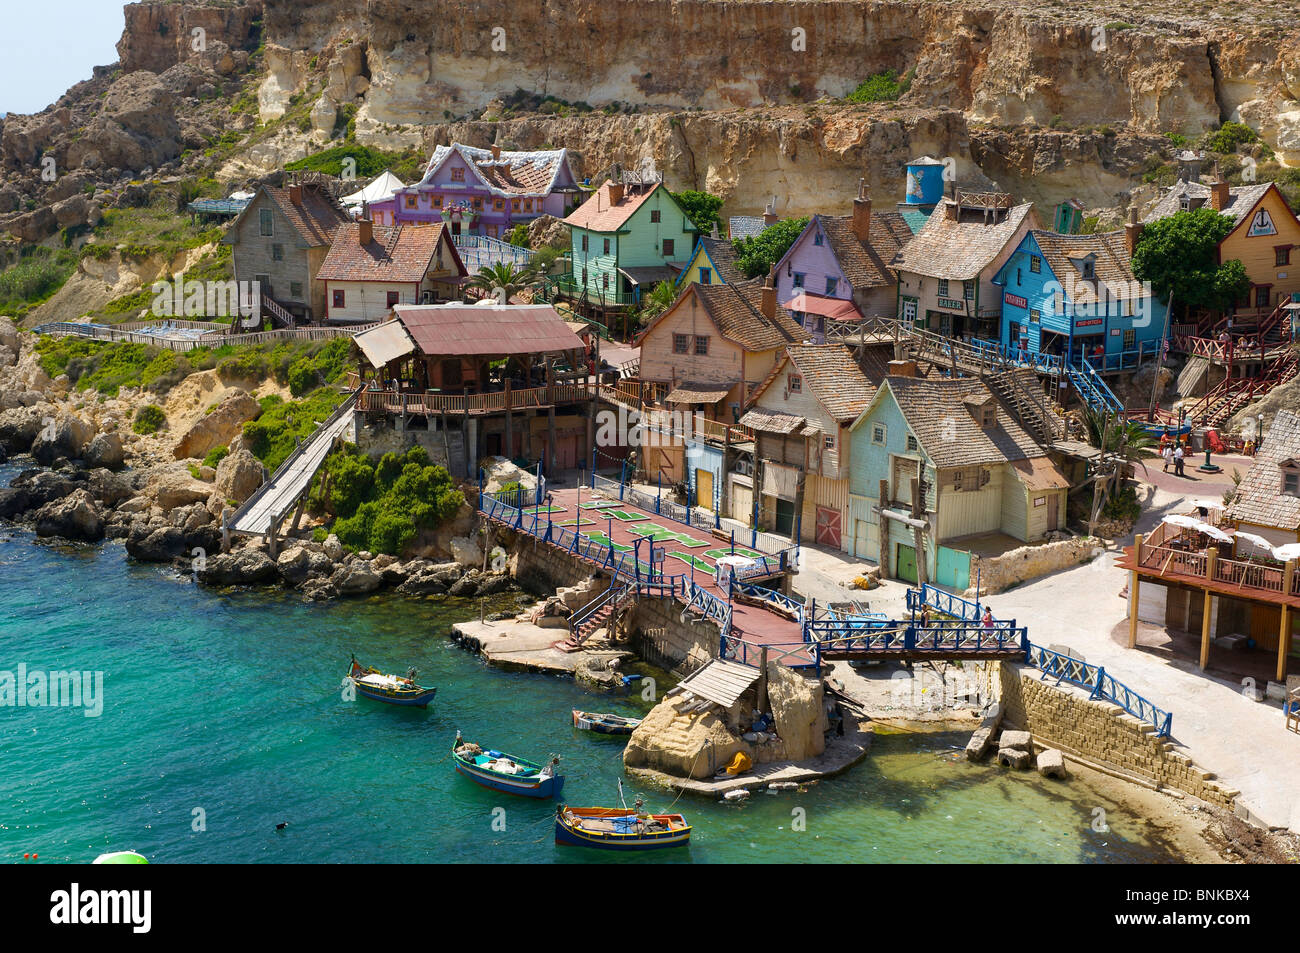 Malta Popeye Village Location Scenery Background Film Movie Spare - Malta vacation